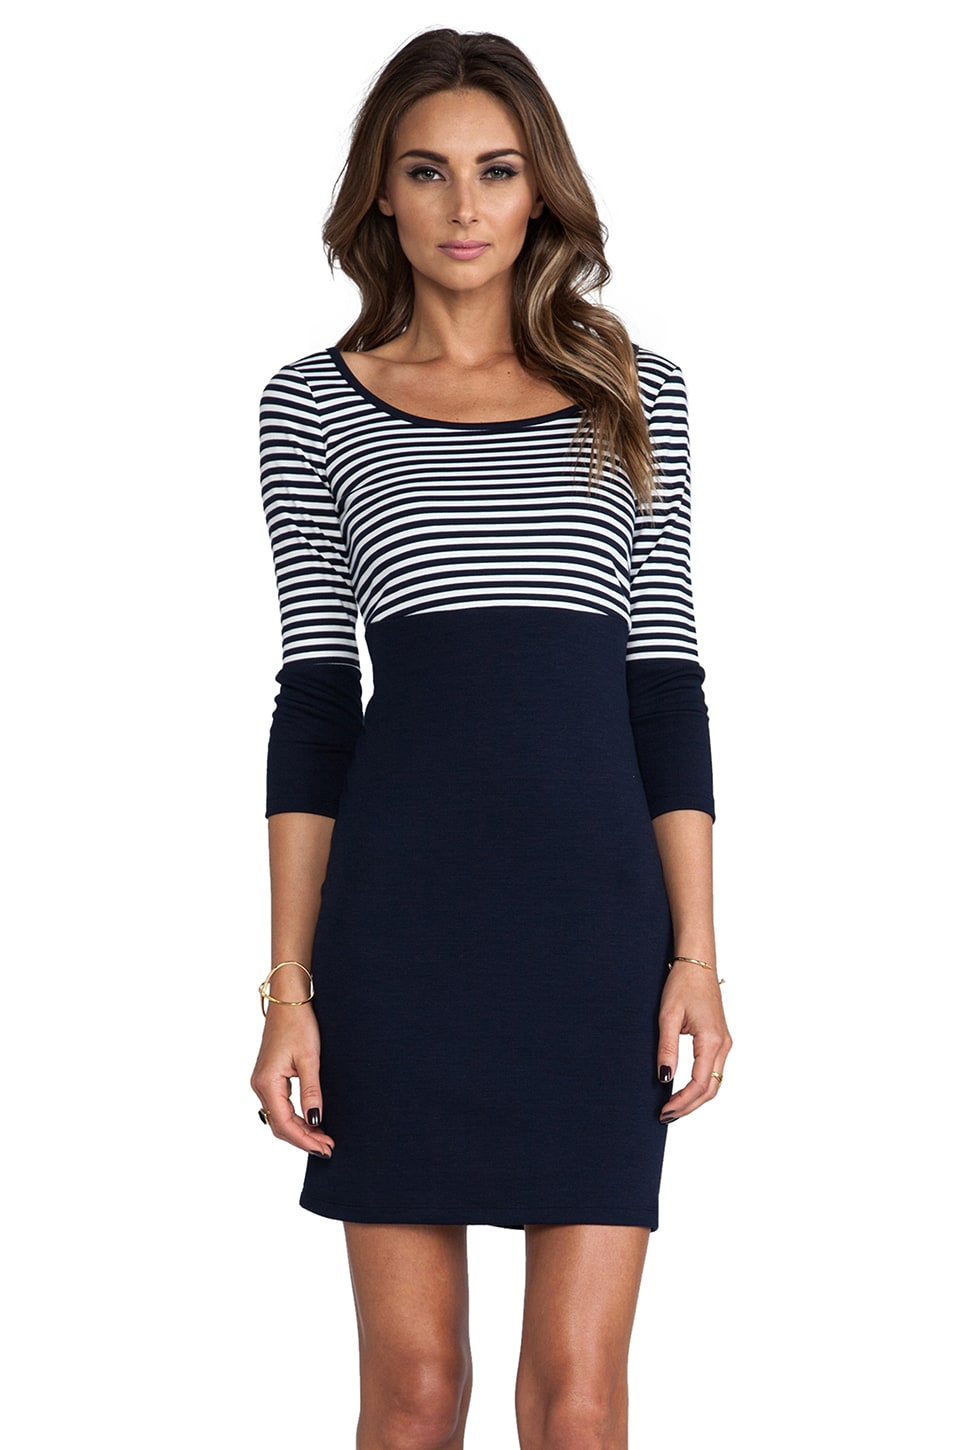 BB Dakota Tallis Color Block Knit Dress in Navy